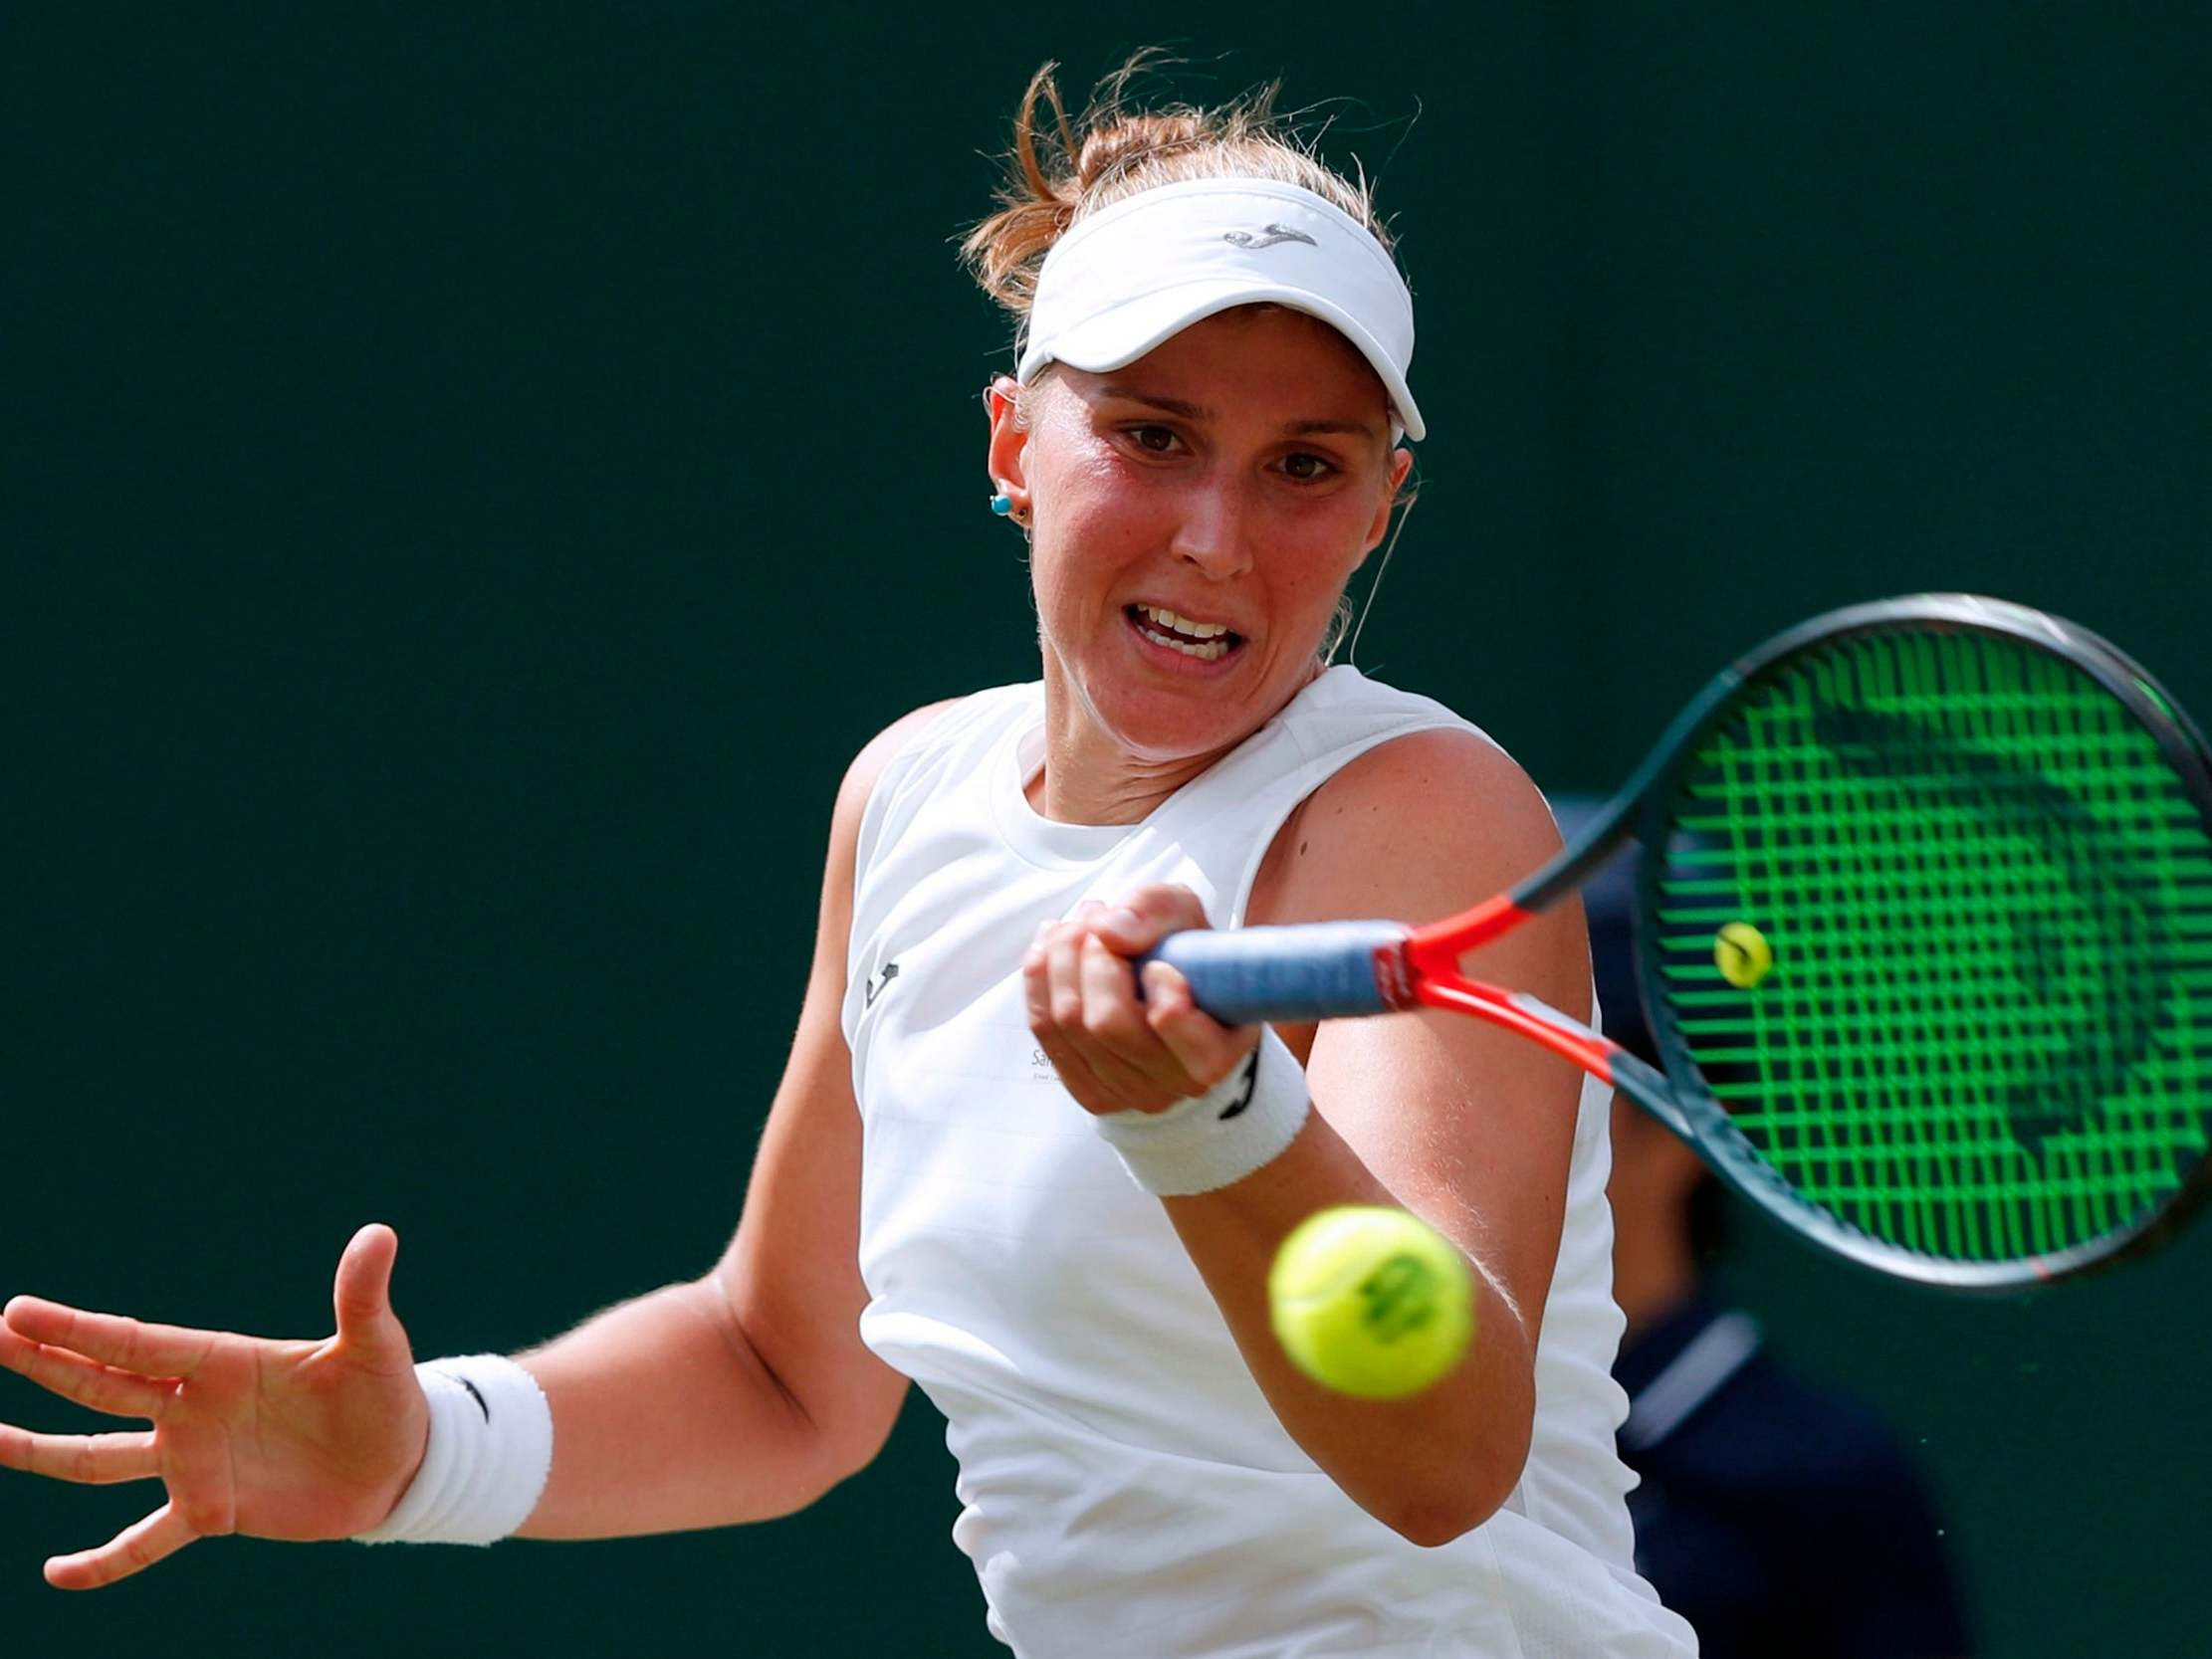 Wimbledon qualifier Beatriz Haddad Maia suspended after failing drugs test